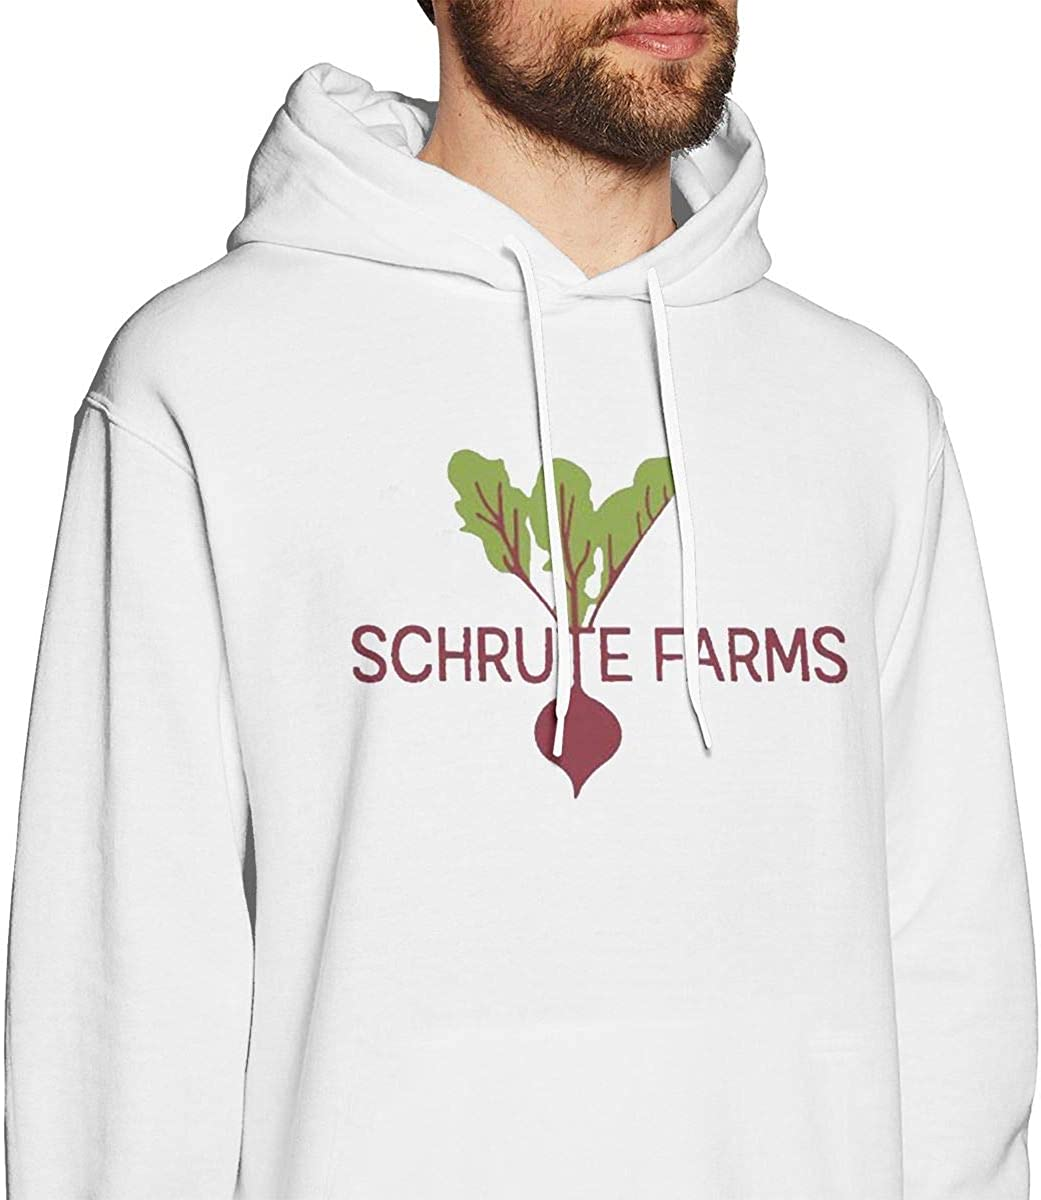 Mens Hooded Sweatshirt Schrute Farms Oversized Classic Print Casual White L